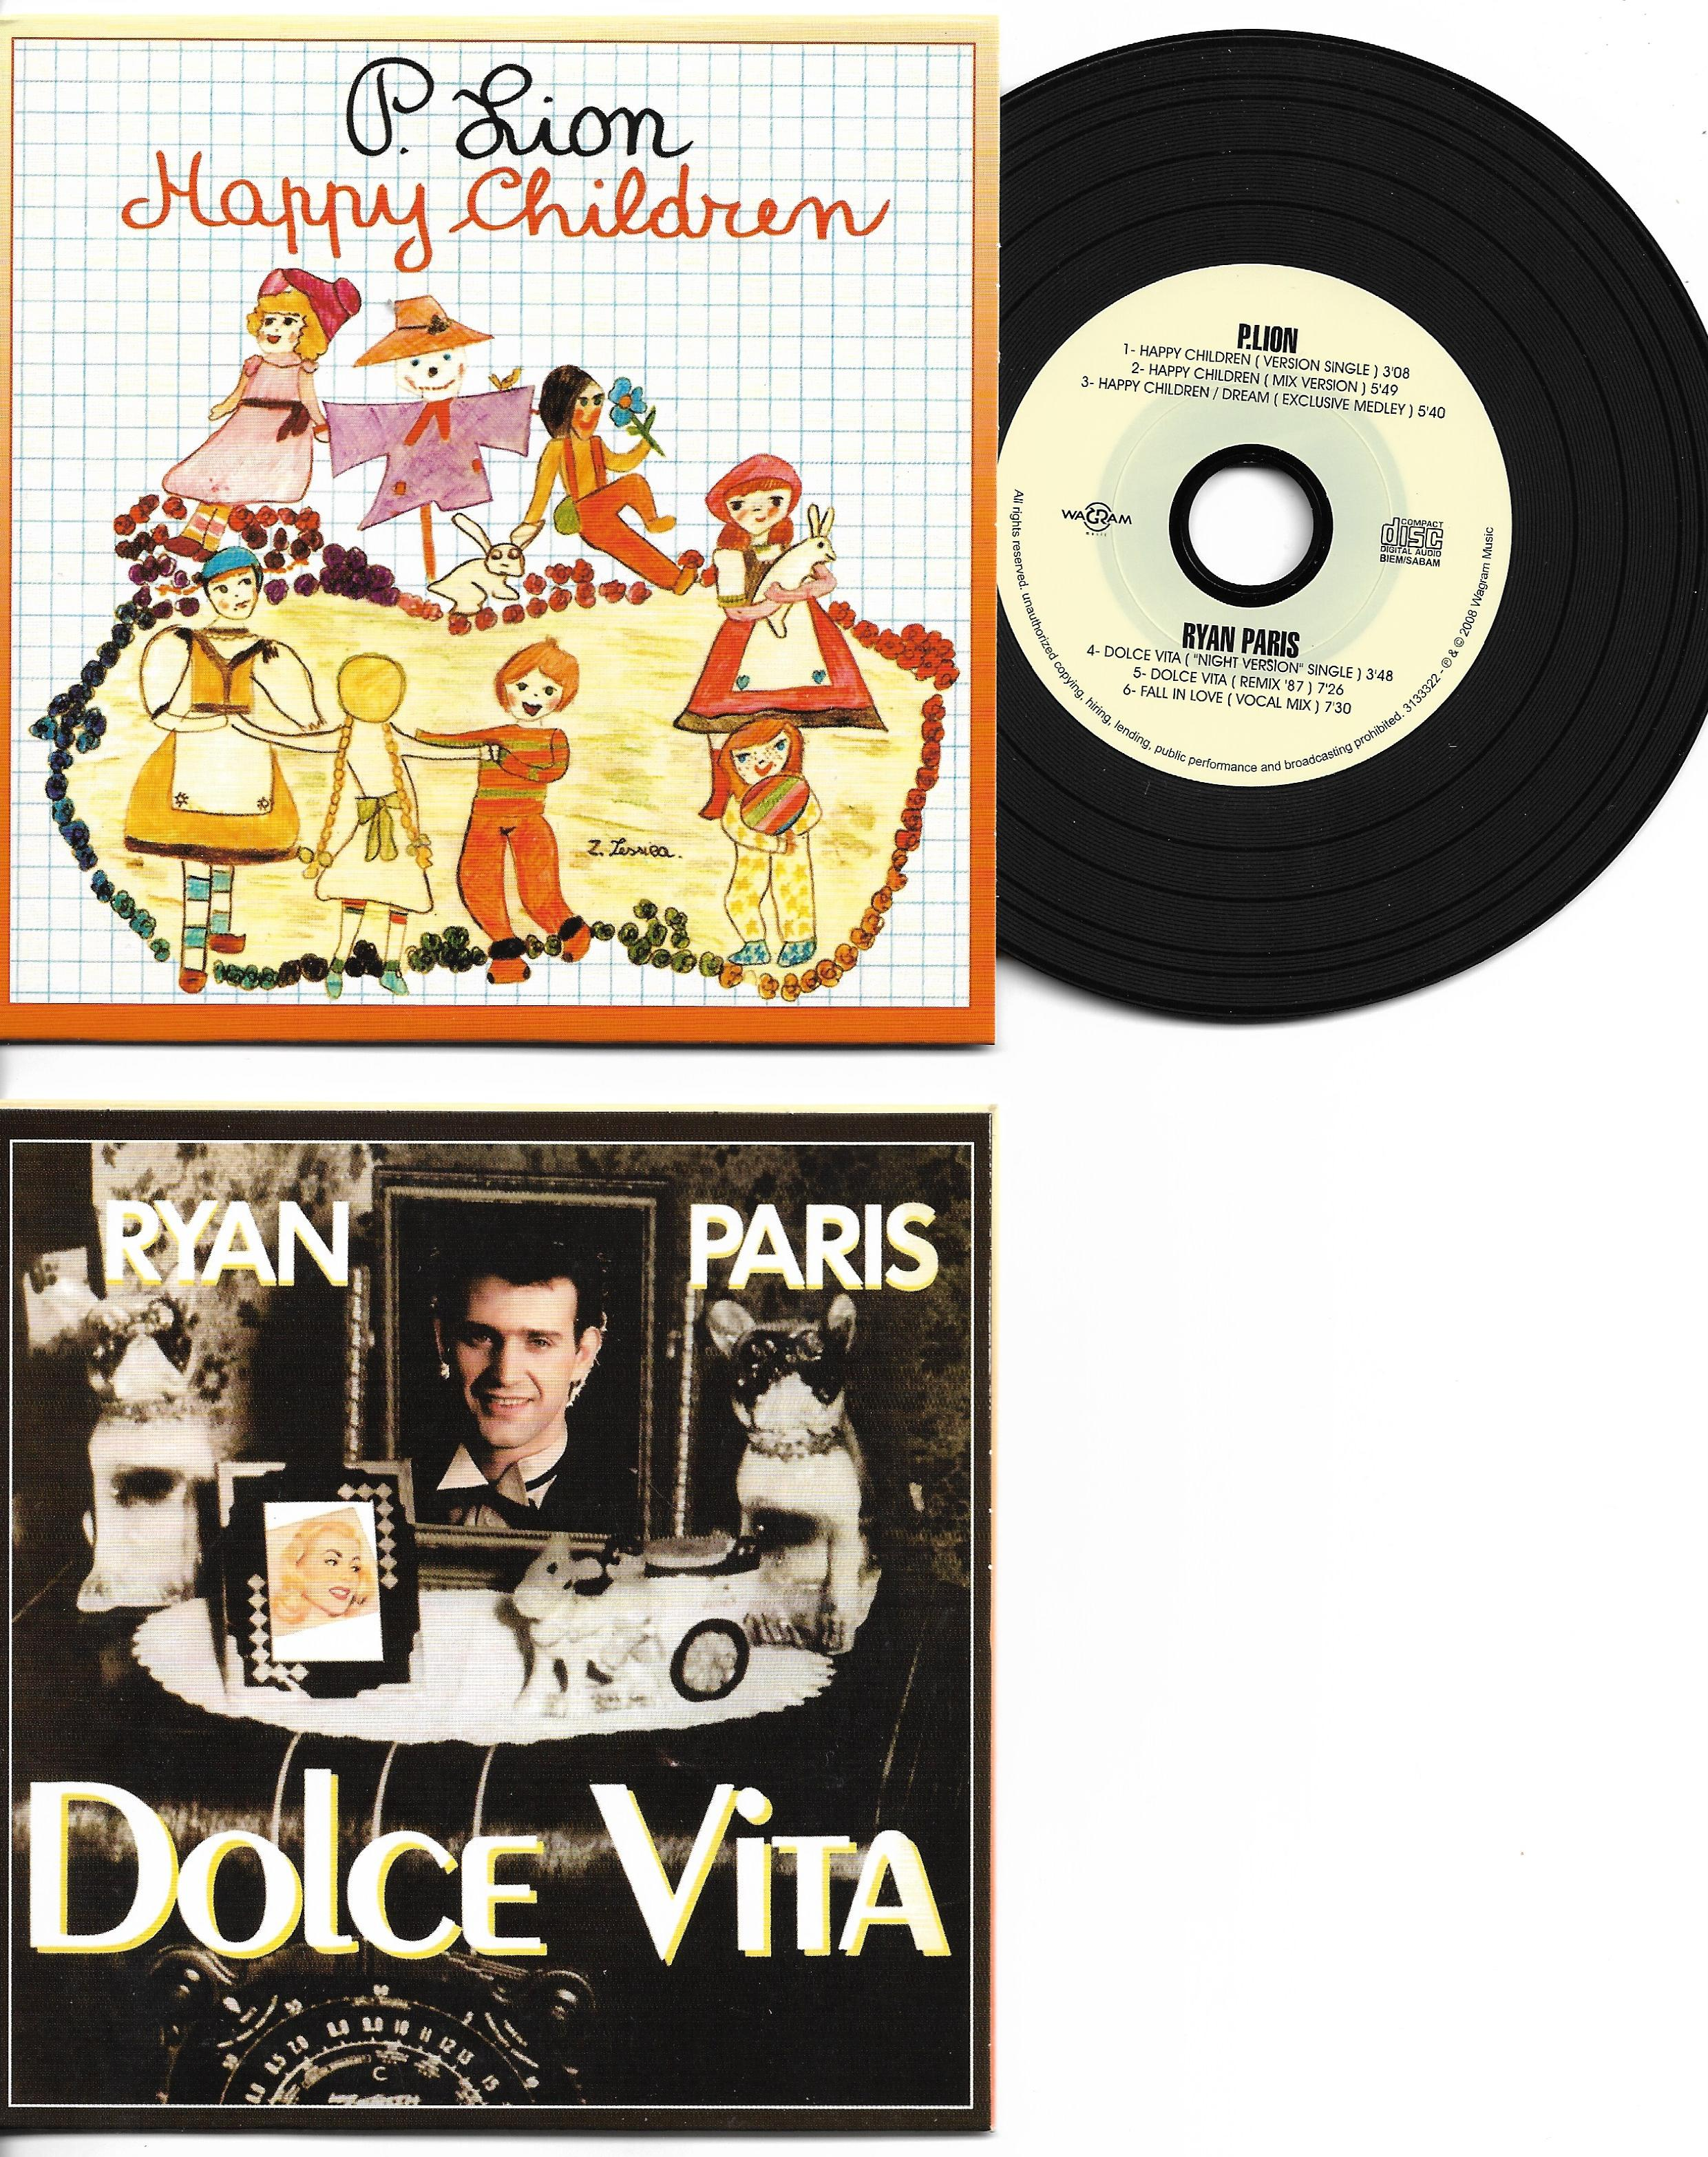 RYAN PARIS -  P. LION - Dolce vita / Happy children special reissue CARD SLEEVE 6-track - CD single